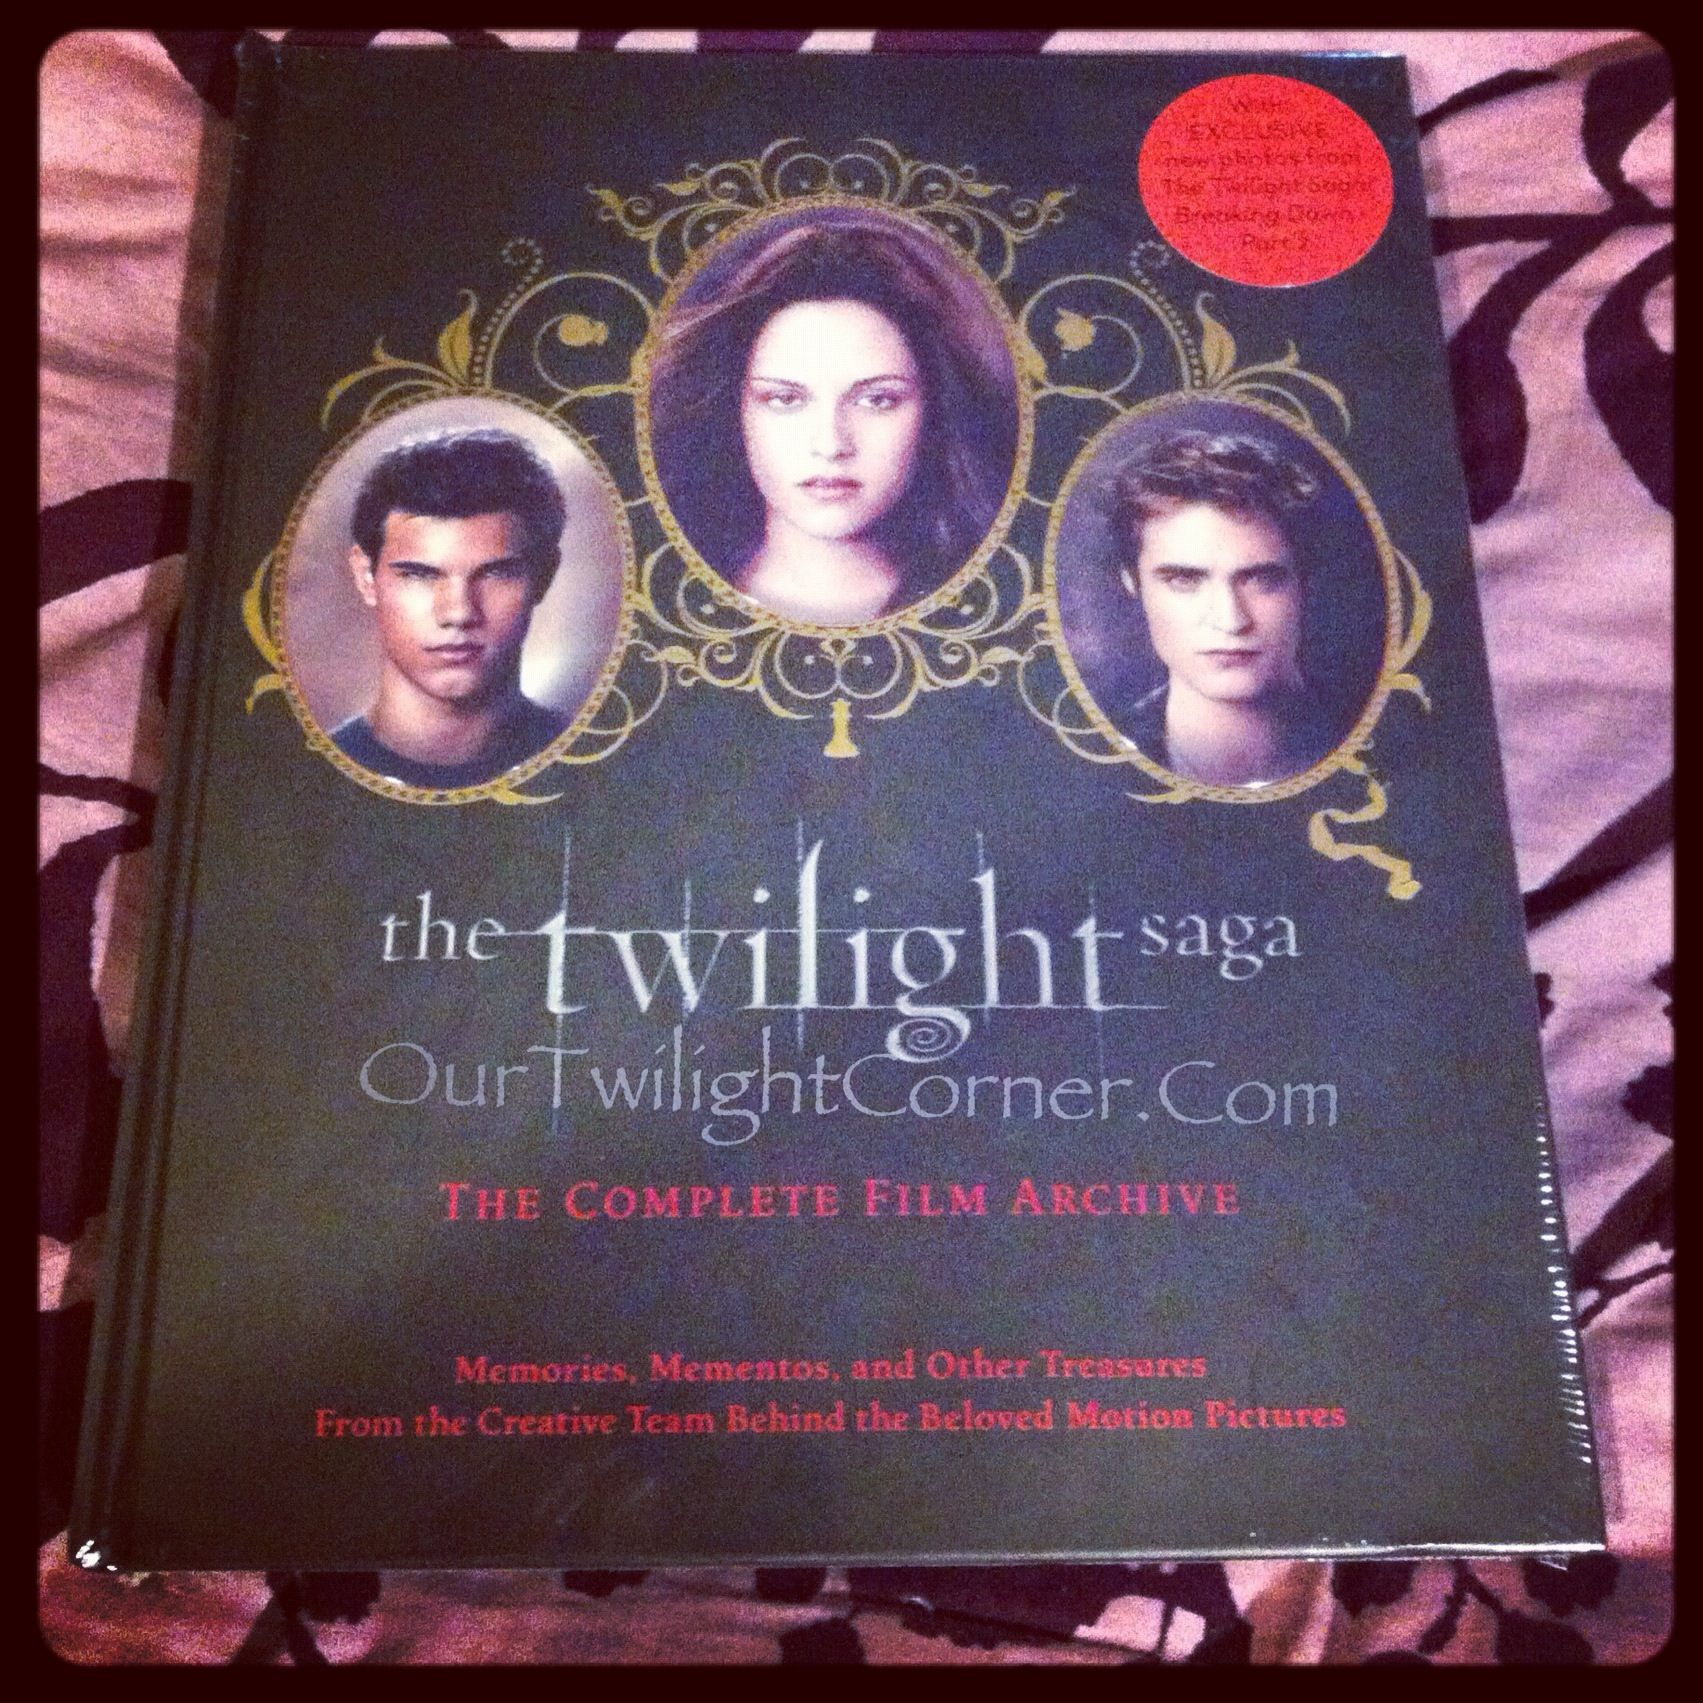 Got My Copy Did You Get Yours Yet Http Ourtwilightcorner Blogspot Com 2012 10 Found My Copy Of Twilight Saga Com Twilight Saga Twilight New Moon Twilight